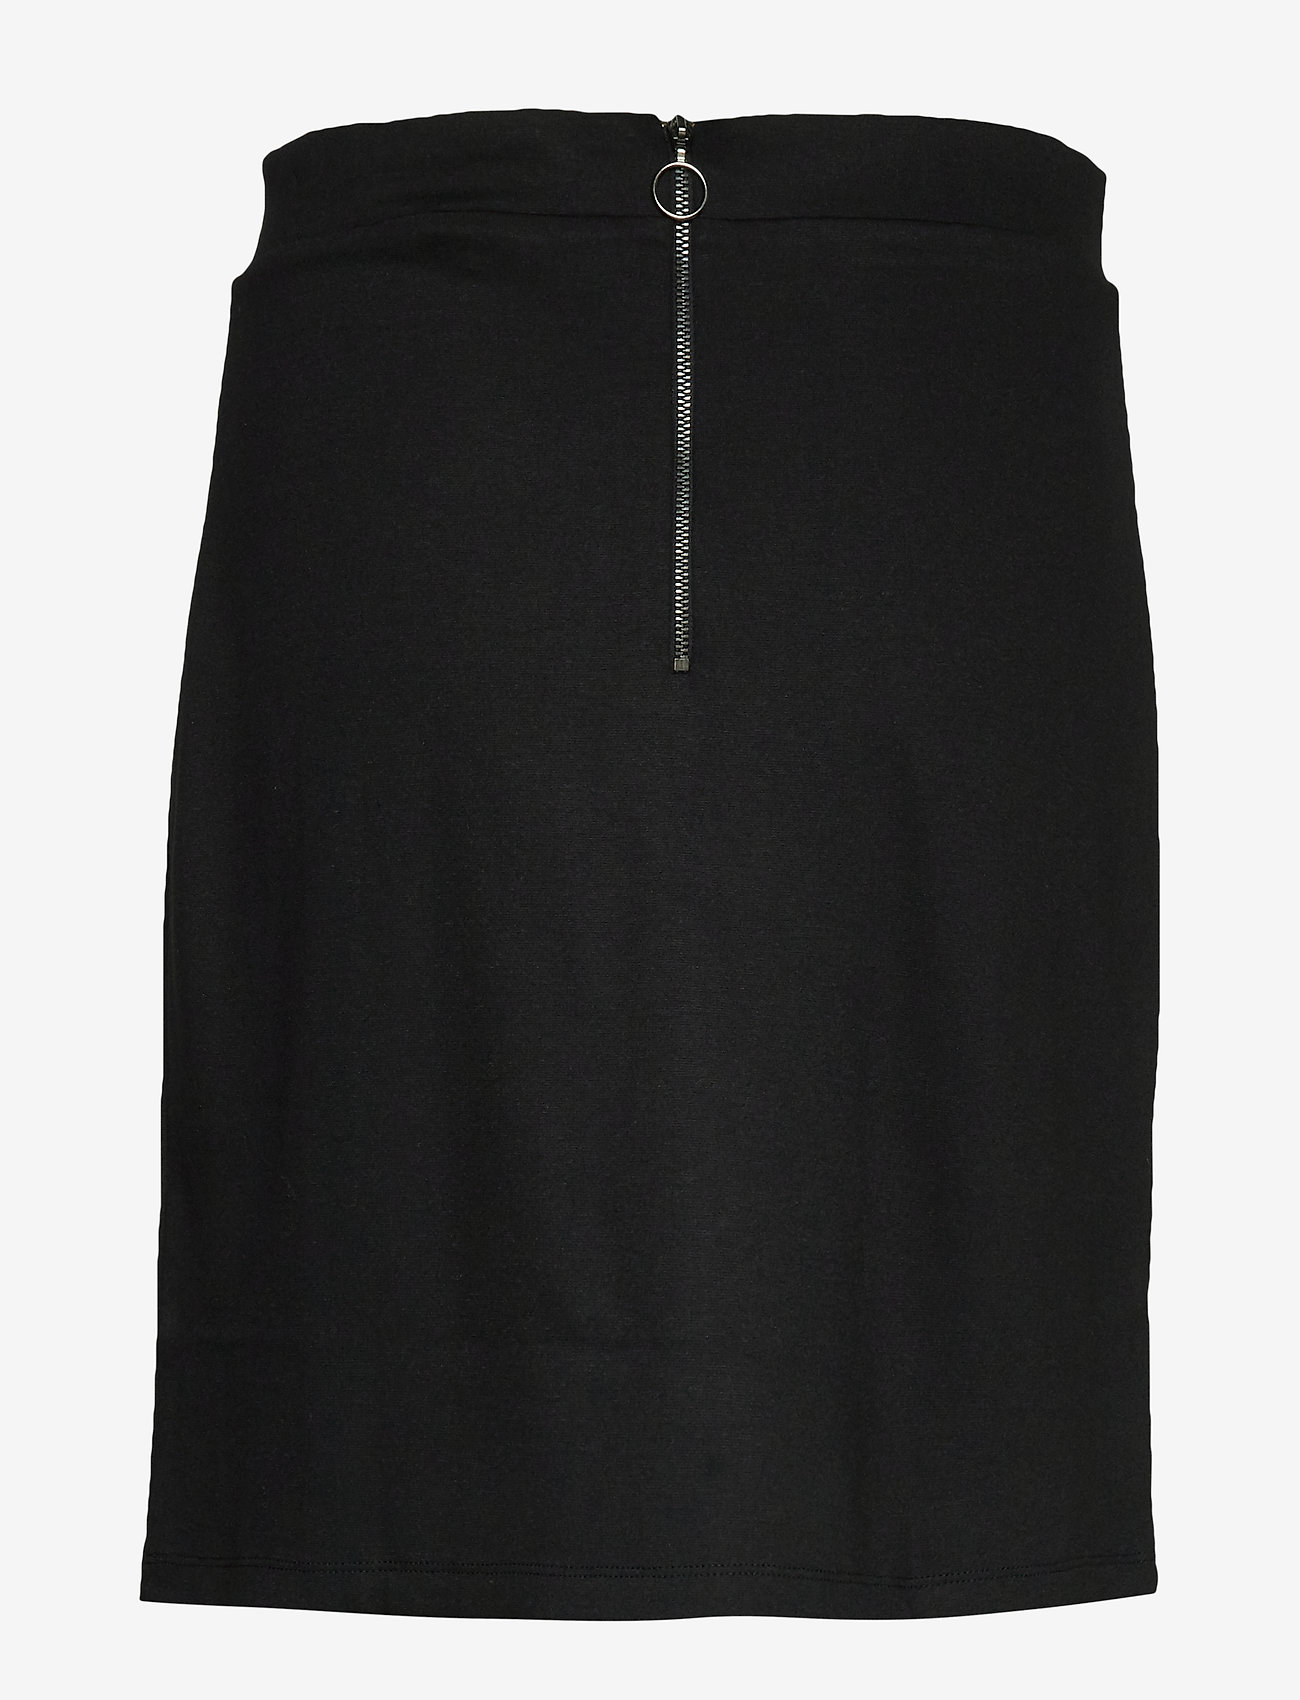 Skirts Knitted (Black) (240 kr) - Esprit Casual